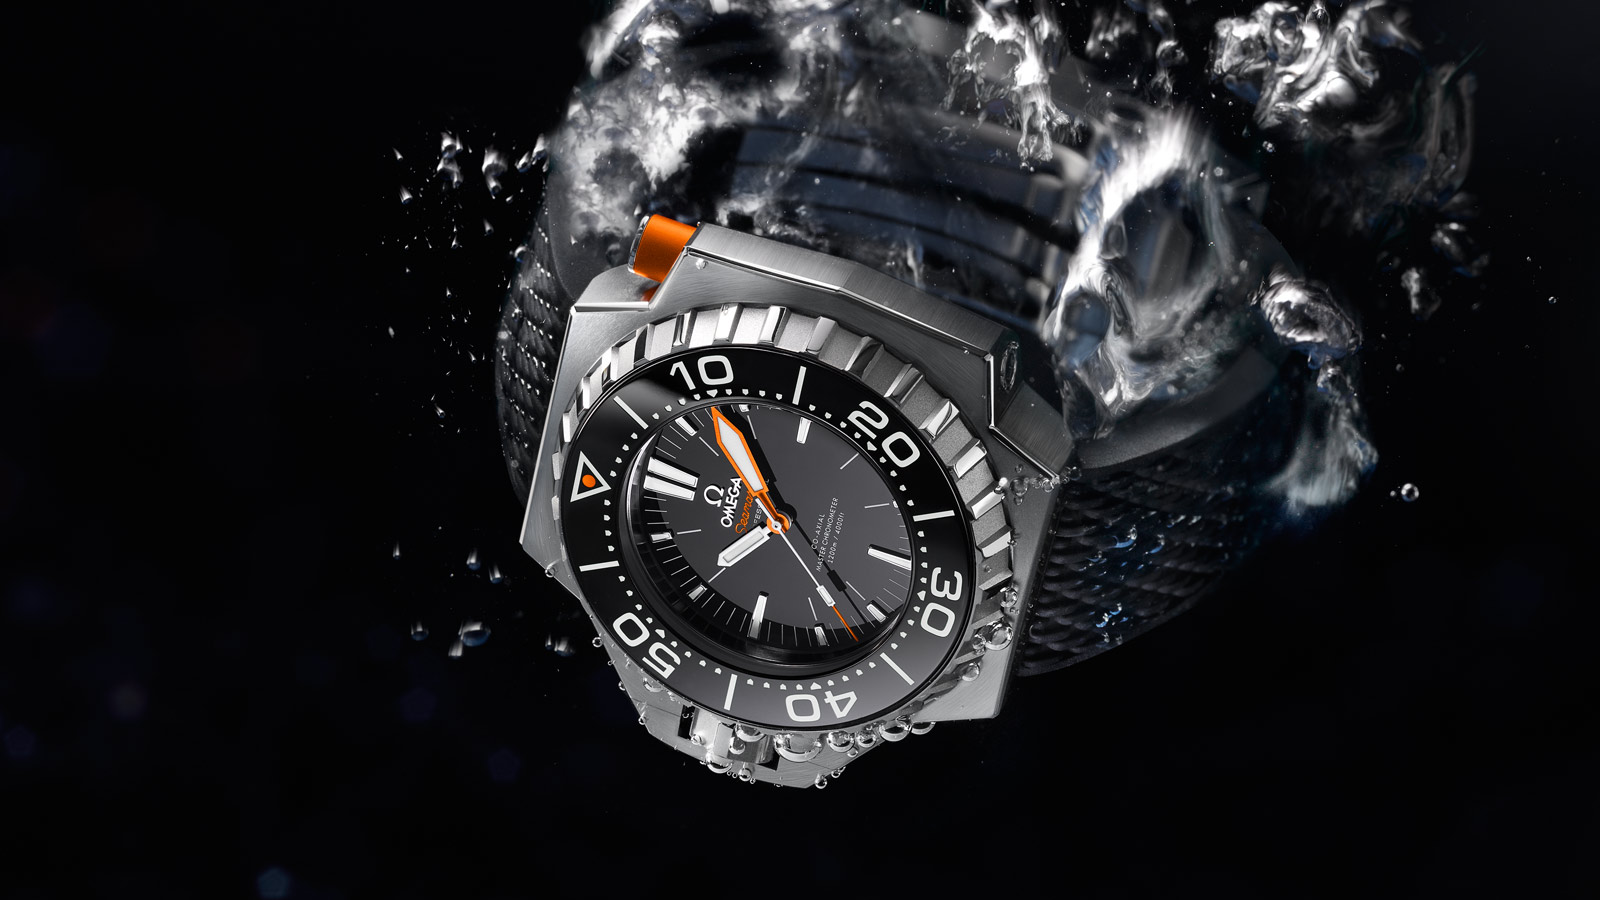 Seamaster Ploprof 1200M Ploprof 1200M Omega Co‑Axial Master Chronometer 55 x 48 mm - 227.90.55.21.01.001 - View 1